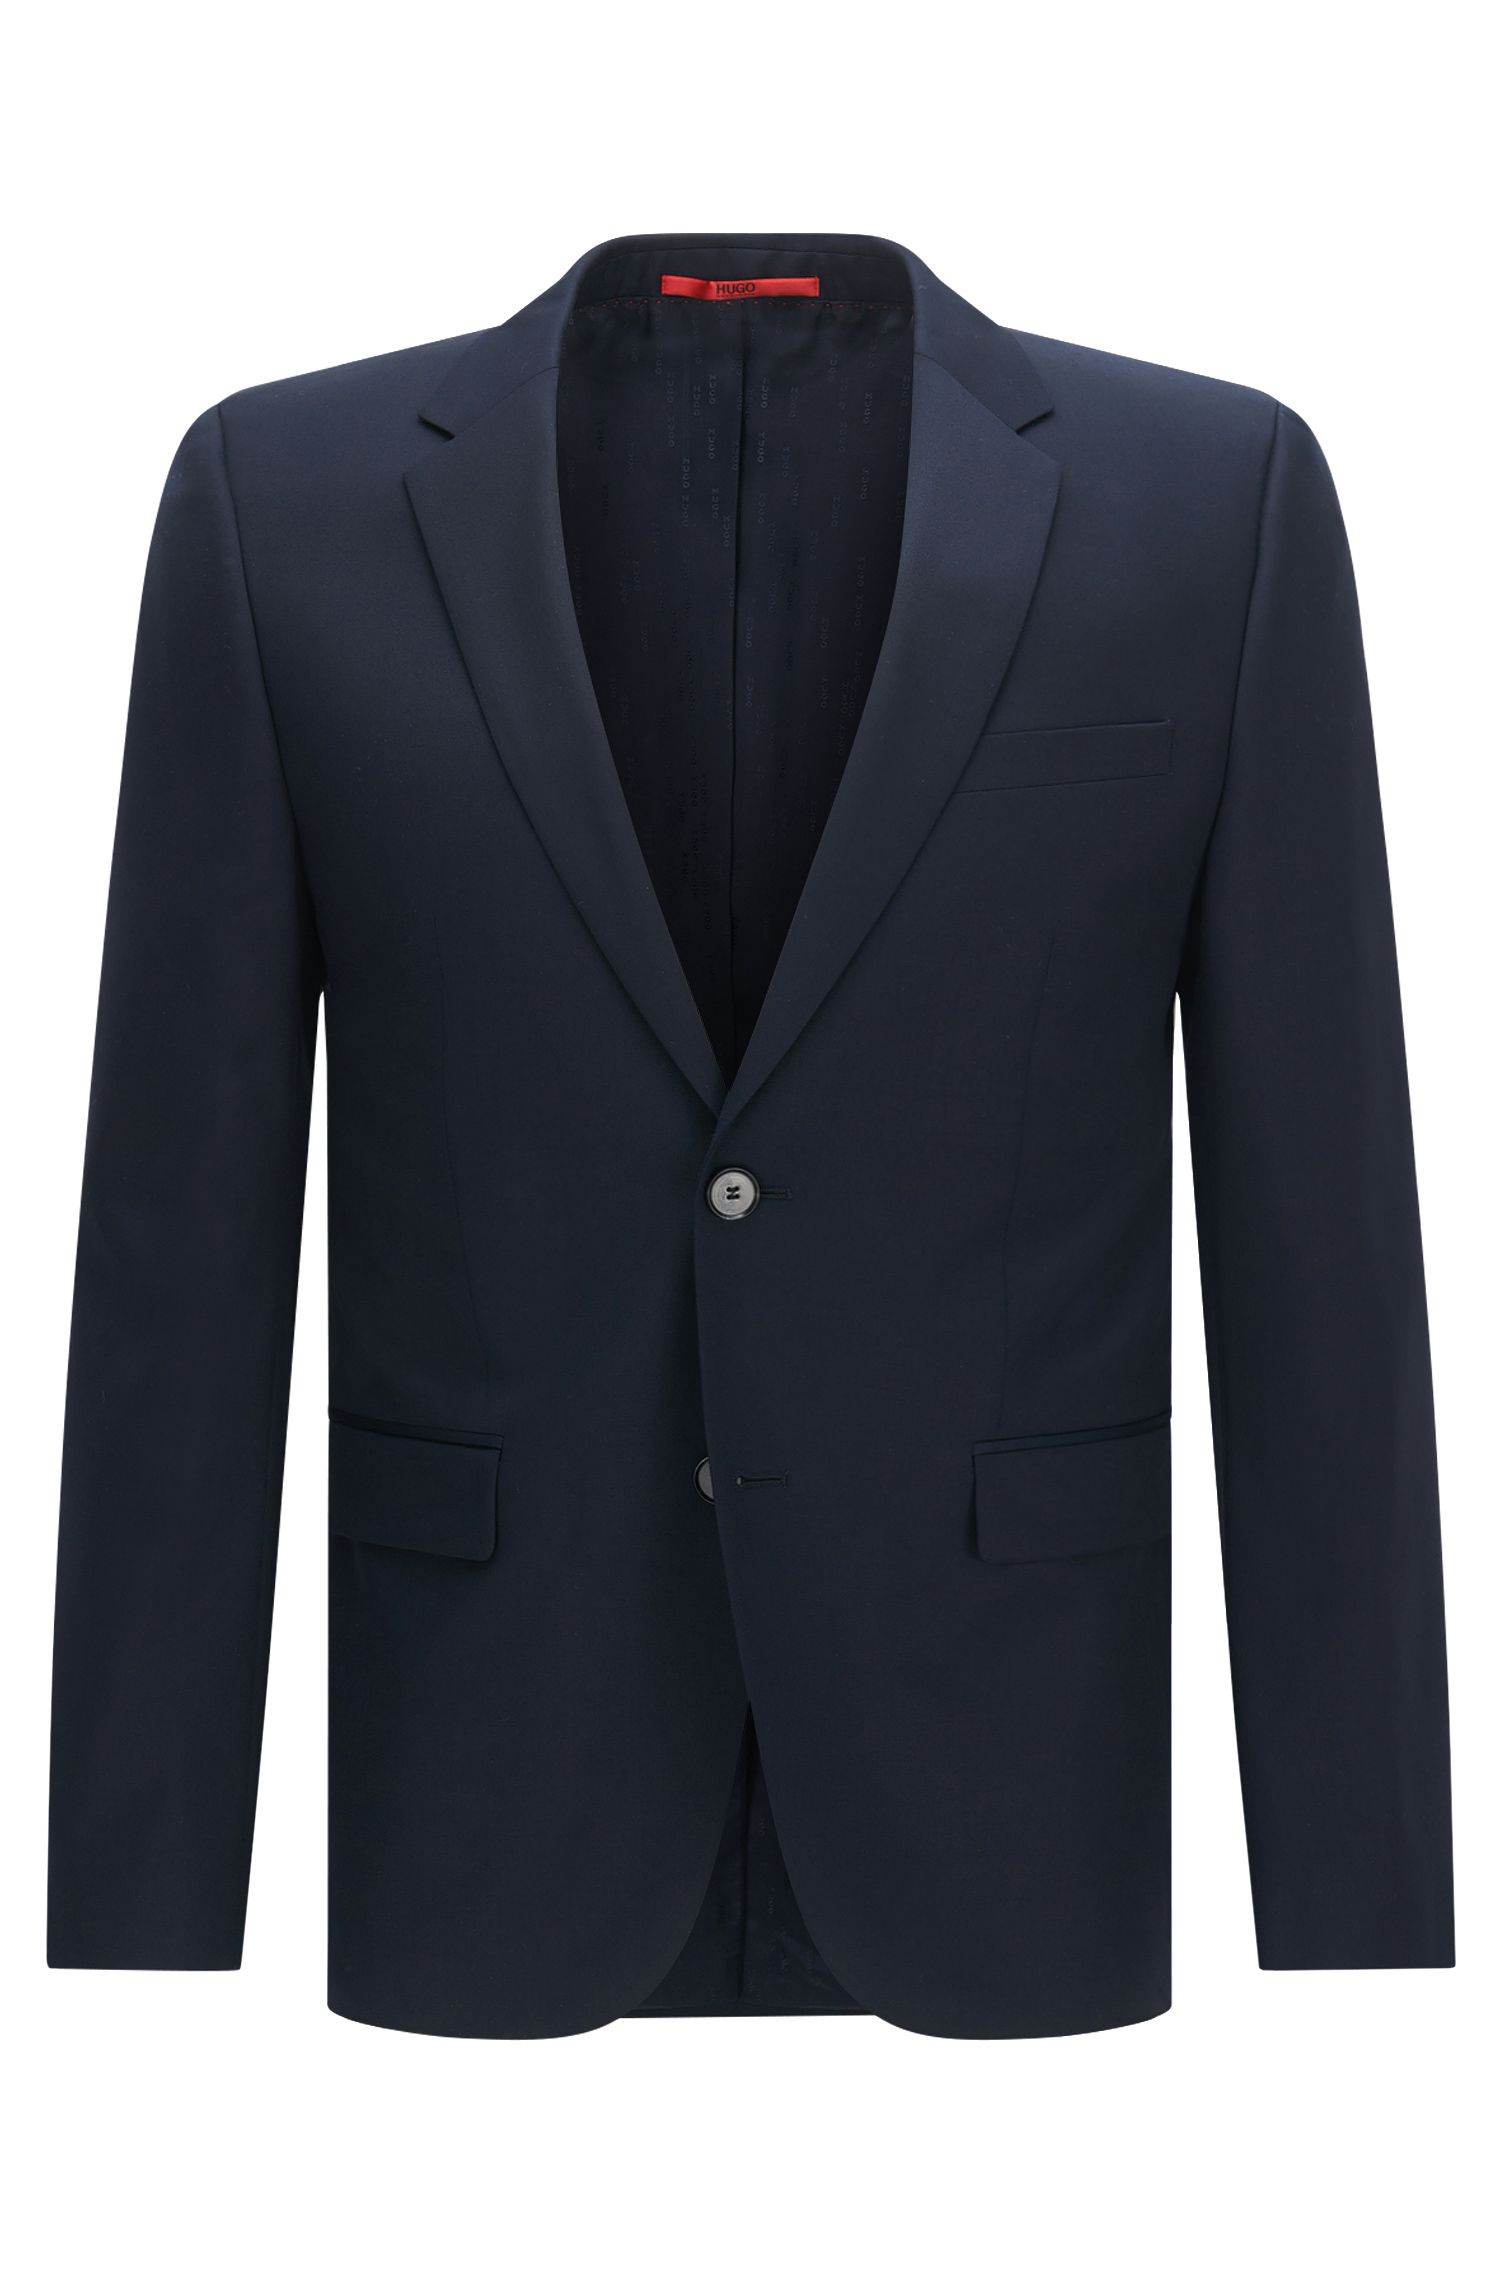 Virgin Wool Suit, Slim Fit | Aeron/Hamen, Dark Blue